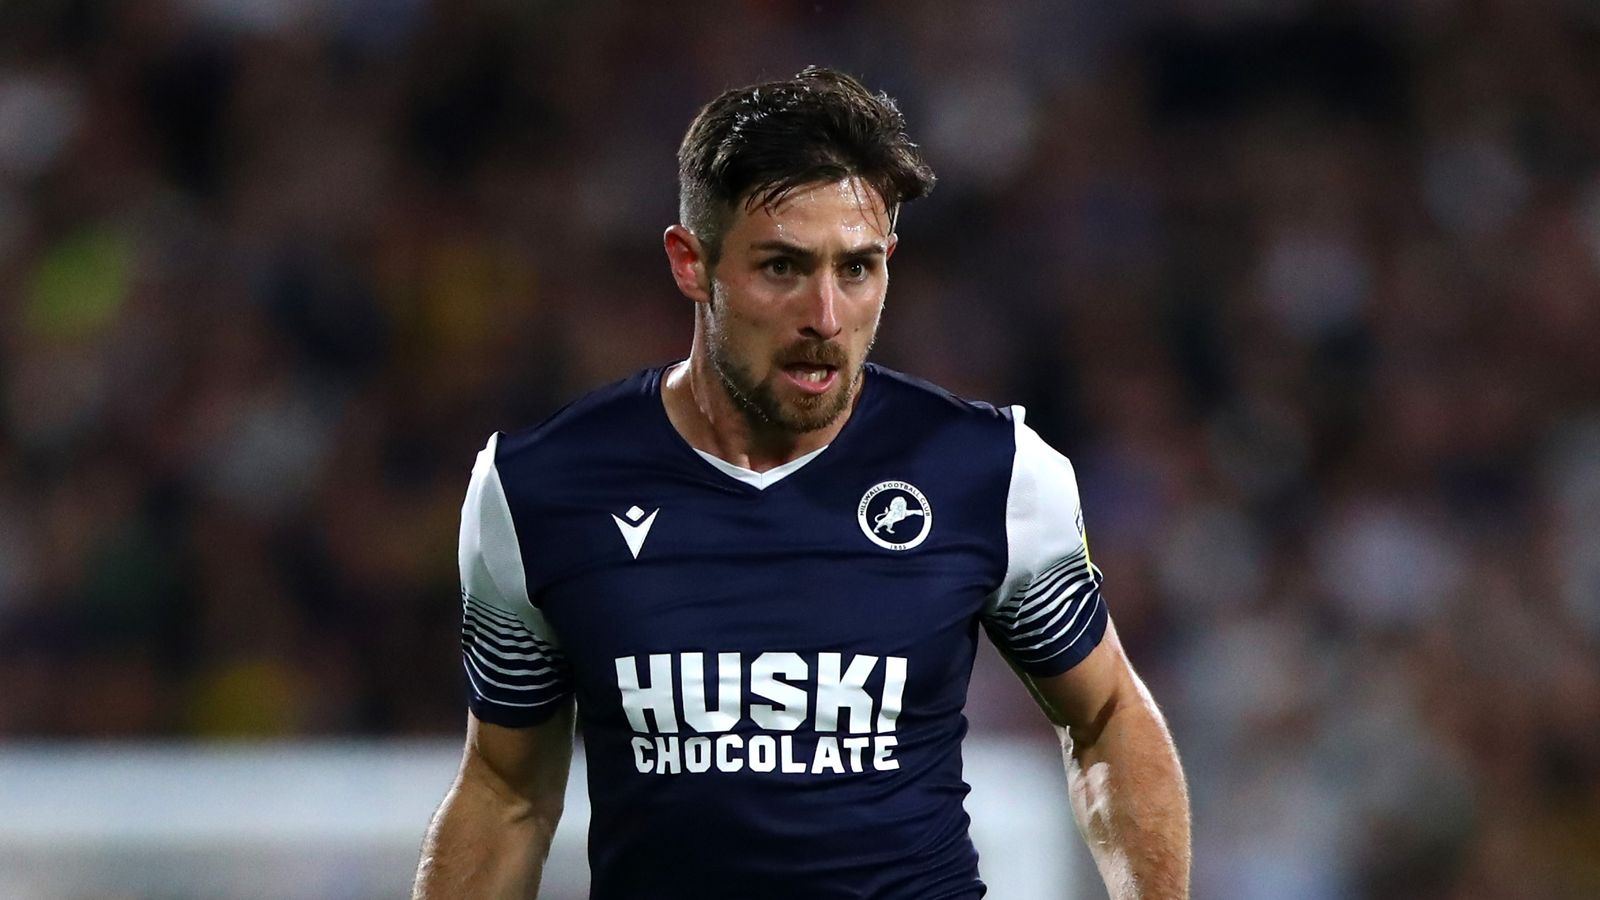 Millwall vs Cardiff preview: Championship clash live on Sky Sports Football Red Button